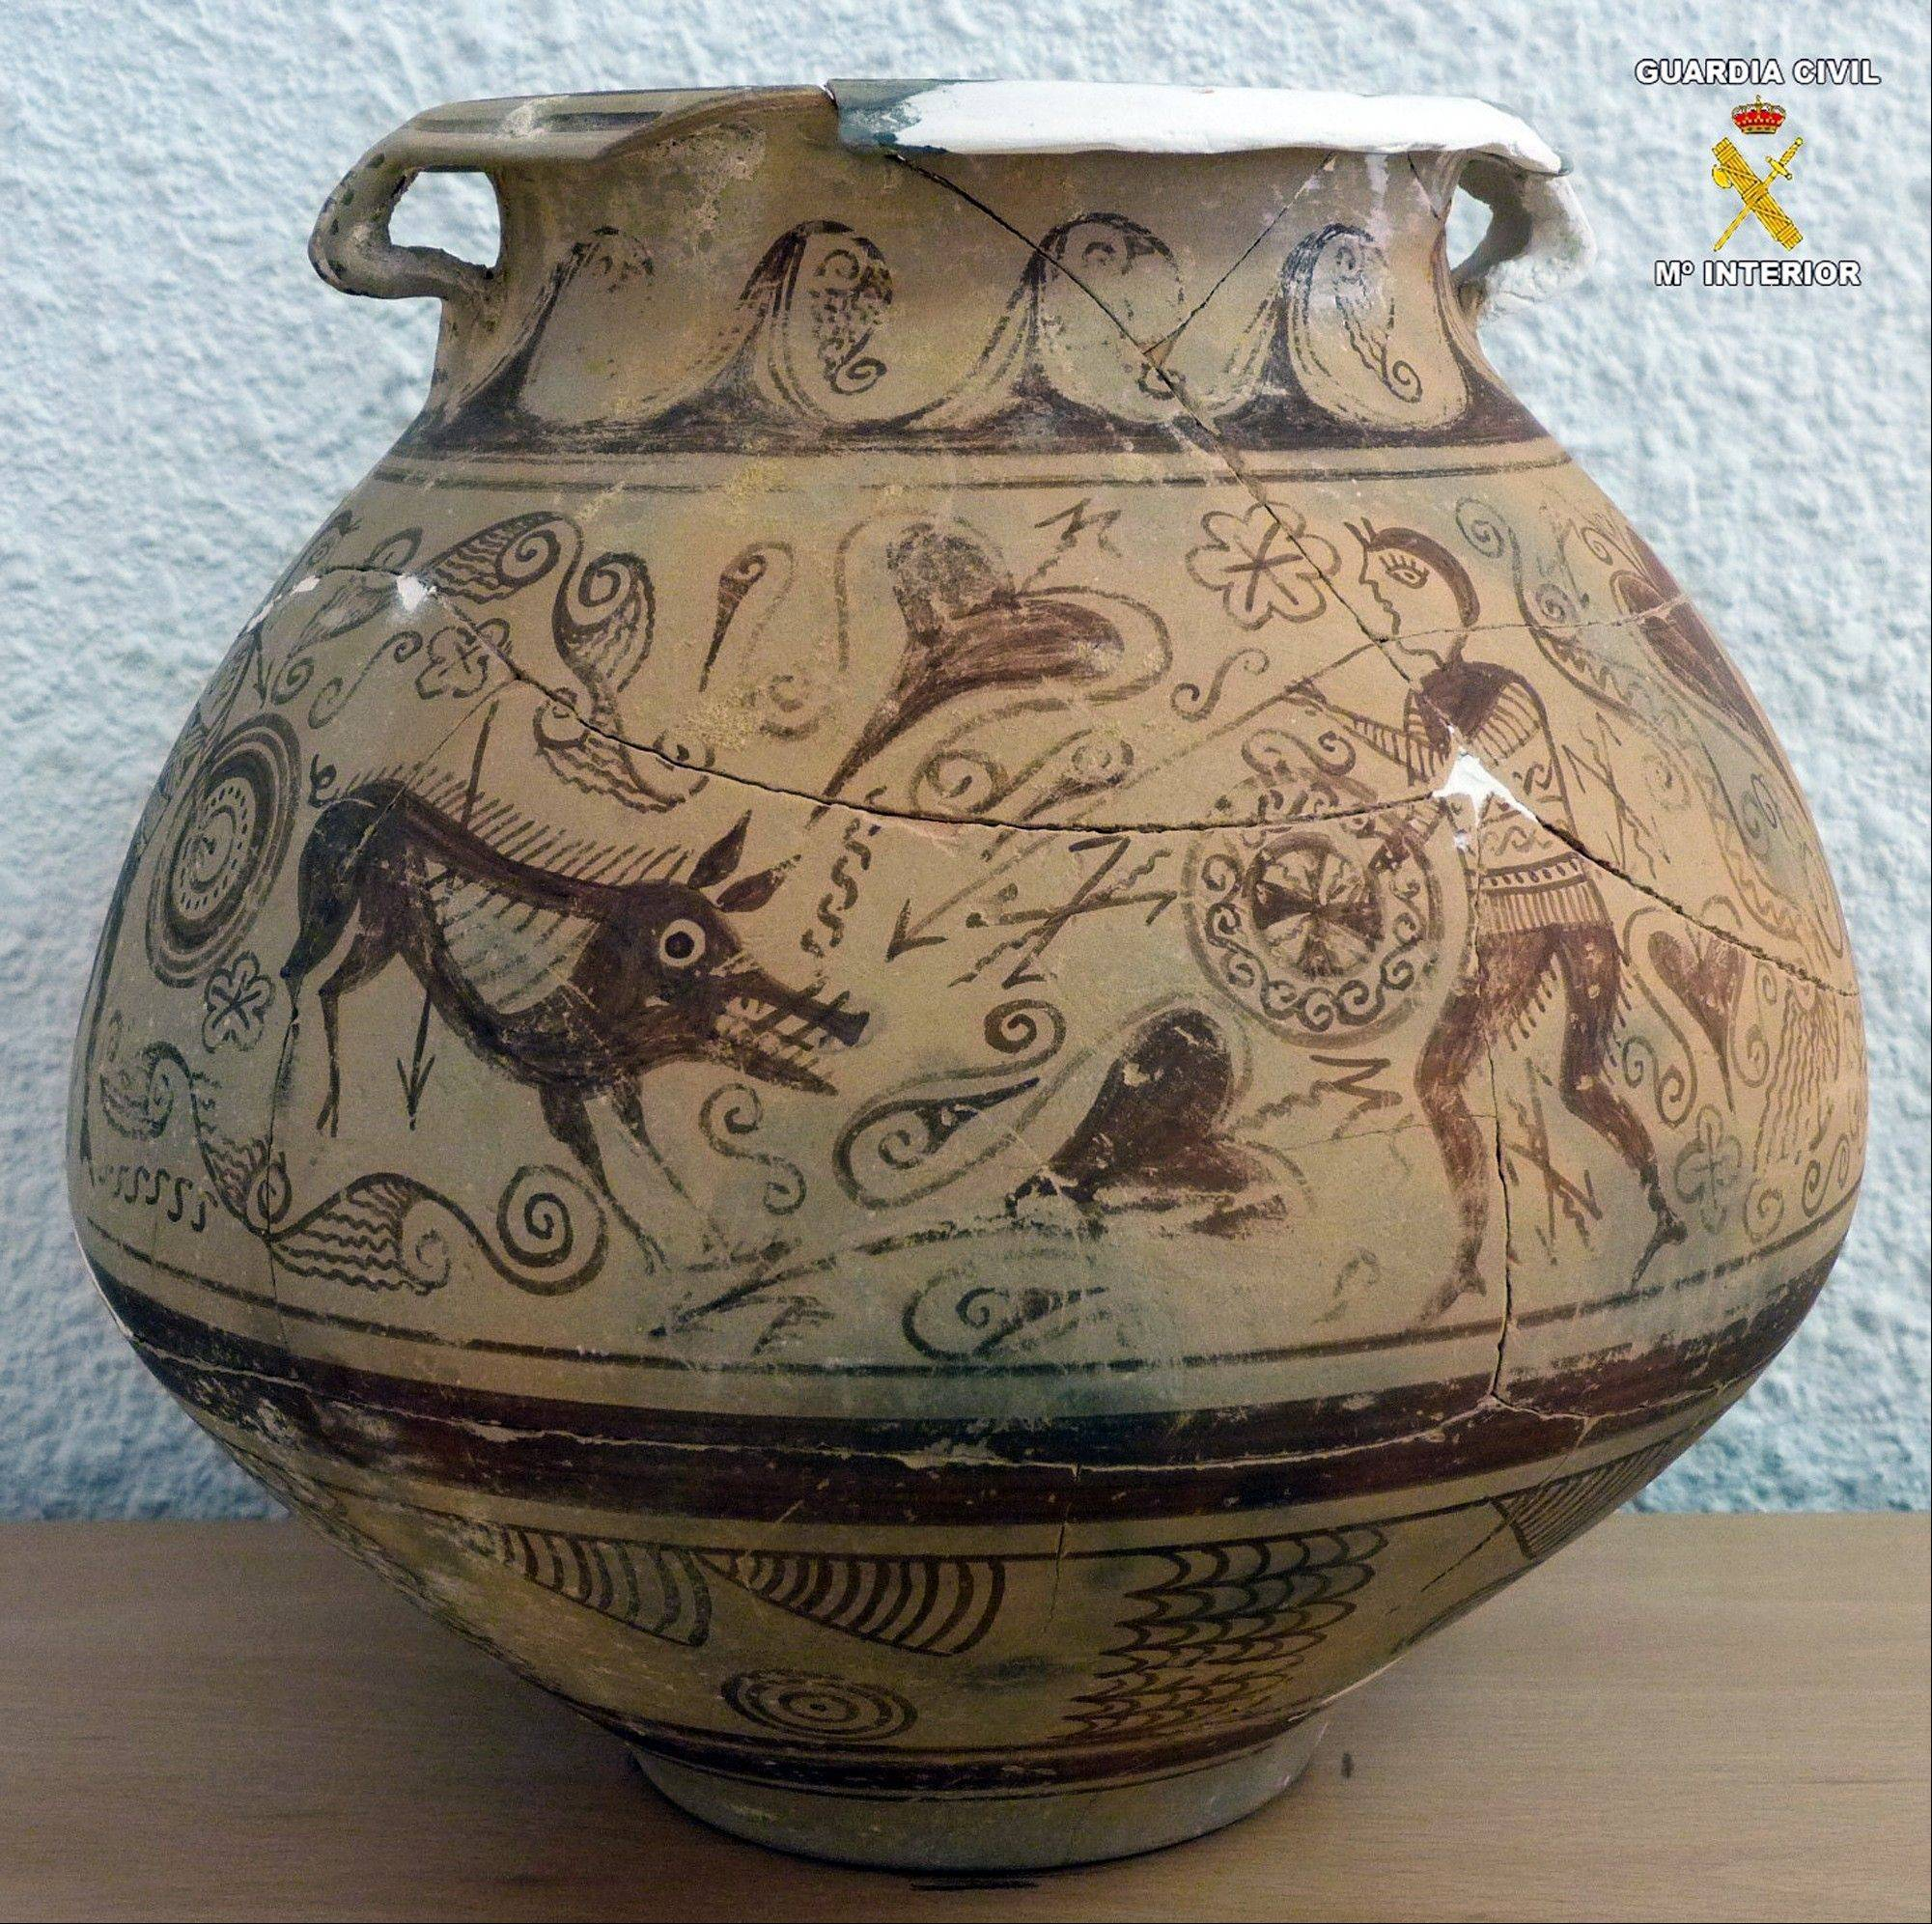 Associated Press/photo from Spanish Interior Ministry A very rare vase from late second century BC that was seized by police after it was found in an antique shop in the town of El Campello, eastern Spain.